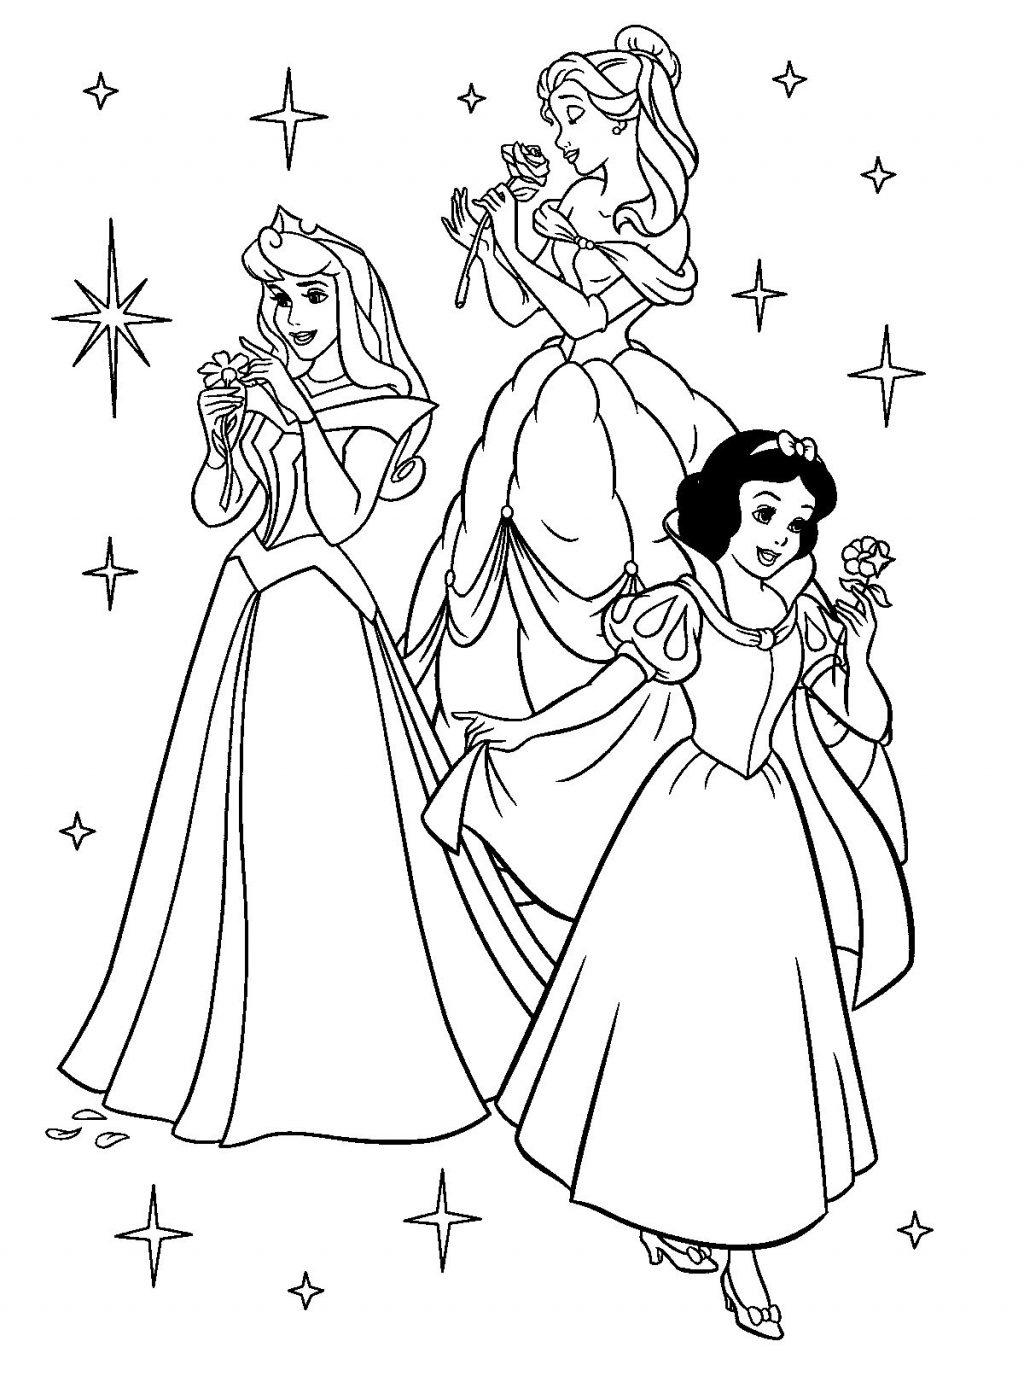 Coloring Page: Phenomenal Disney Princess Coloring Pages. - Free Printable Coloring Pages Of Disney Characters